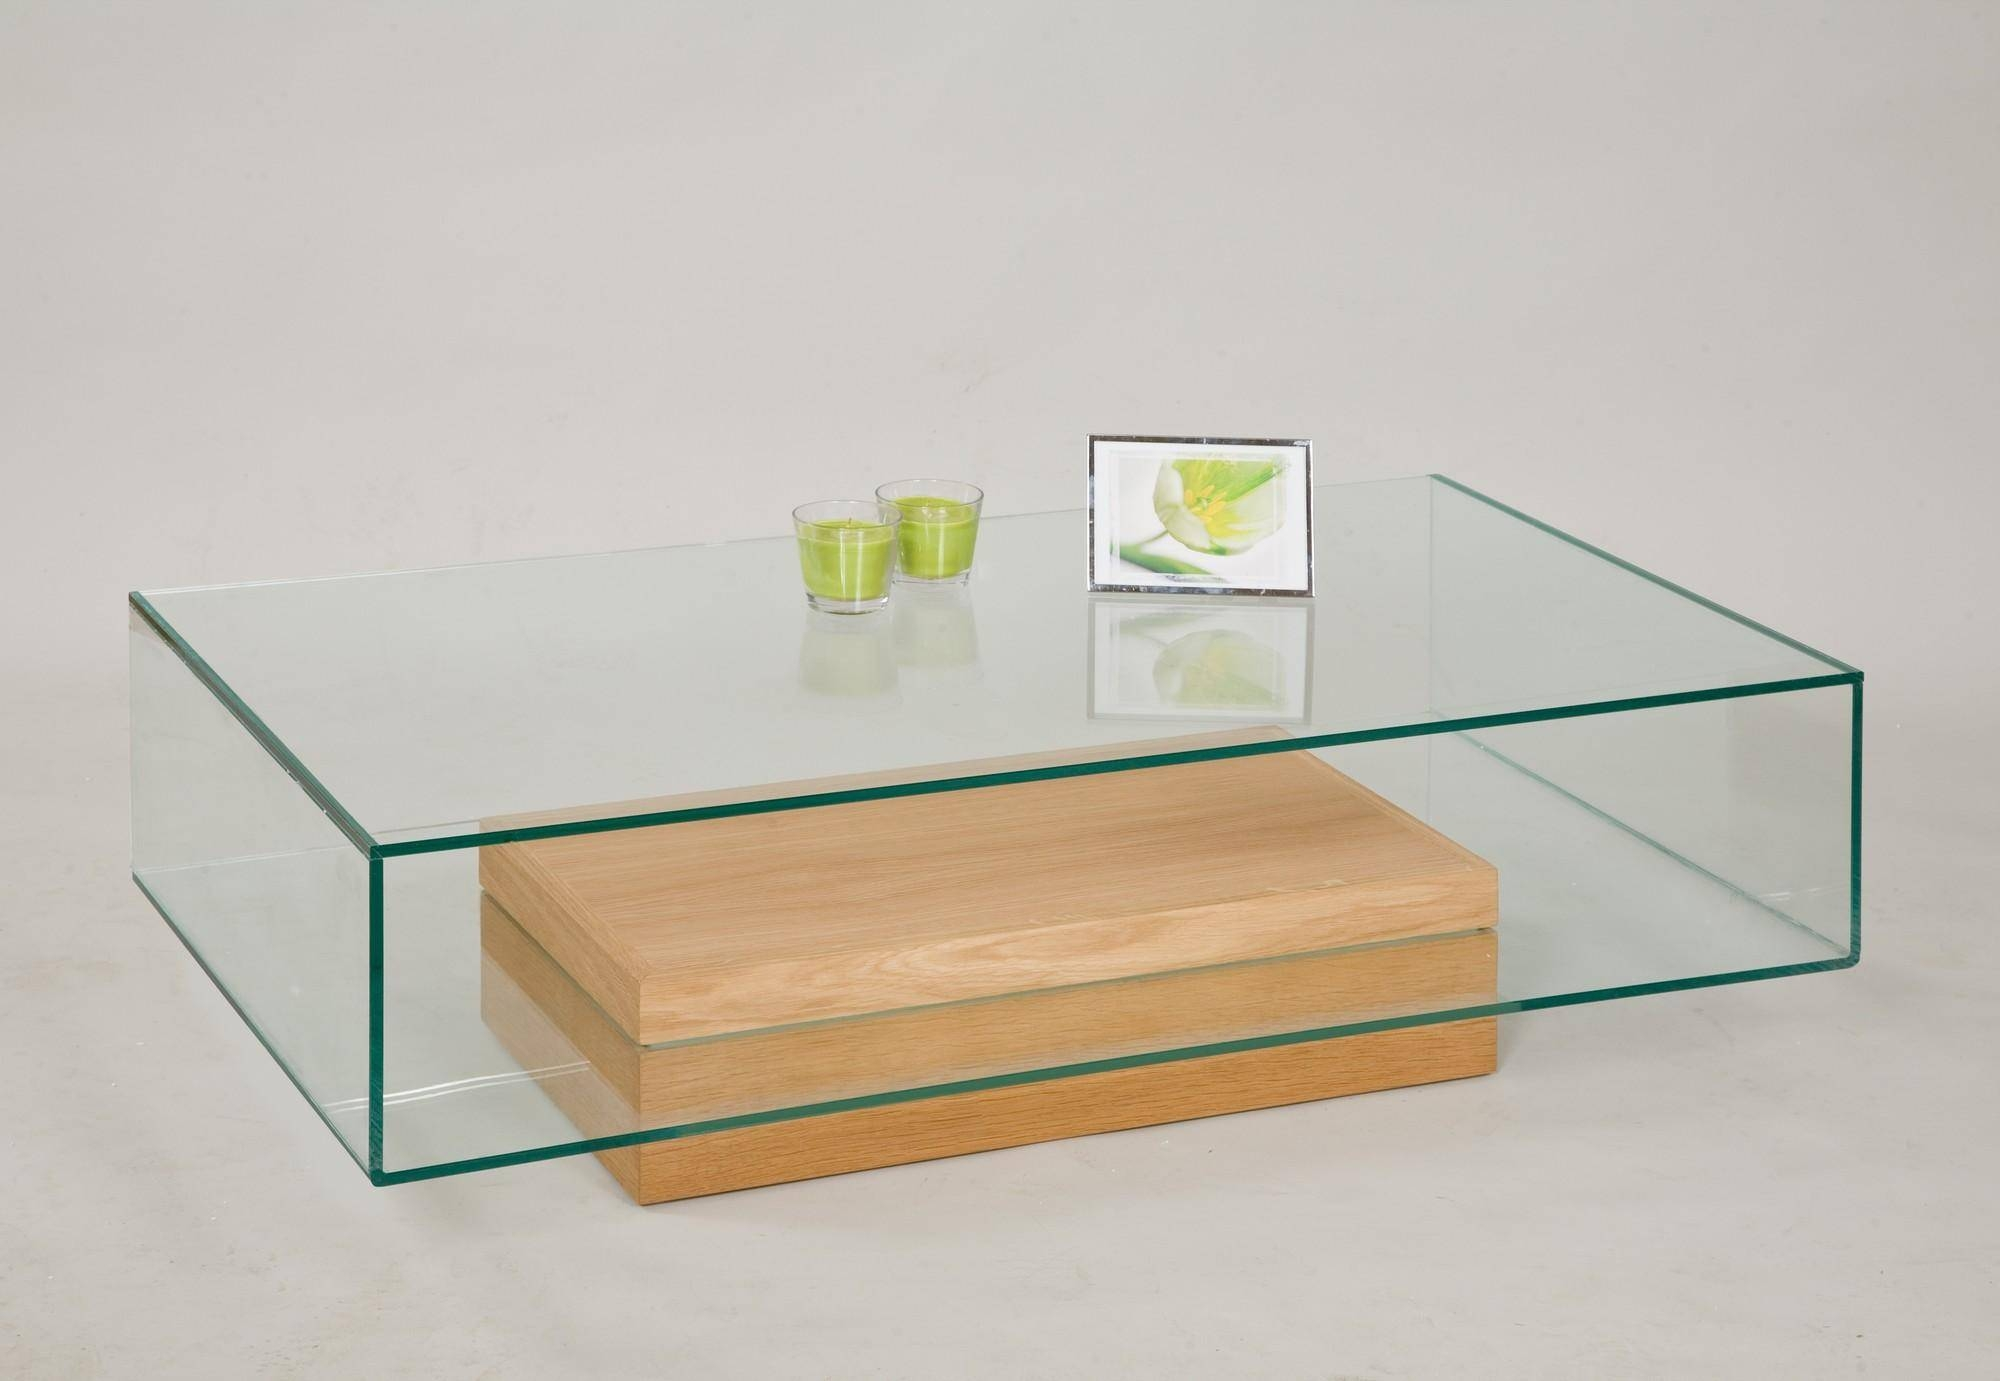 Decorating Oak Coffee Table | Home Furniture And Decor intended for Oak Coffee Tables With Shelf (Image 12 of 30)